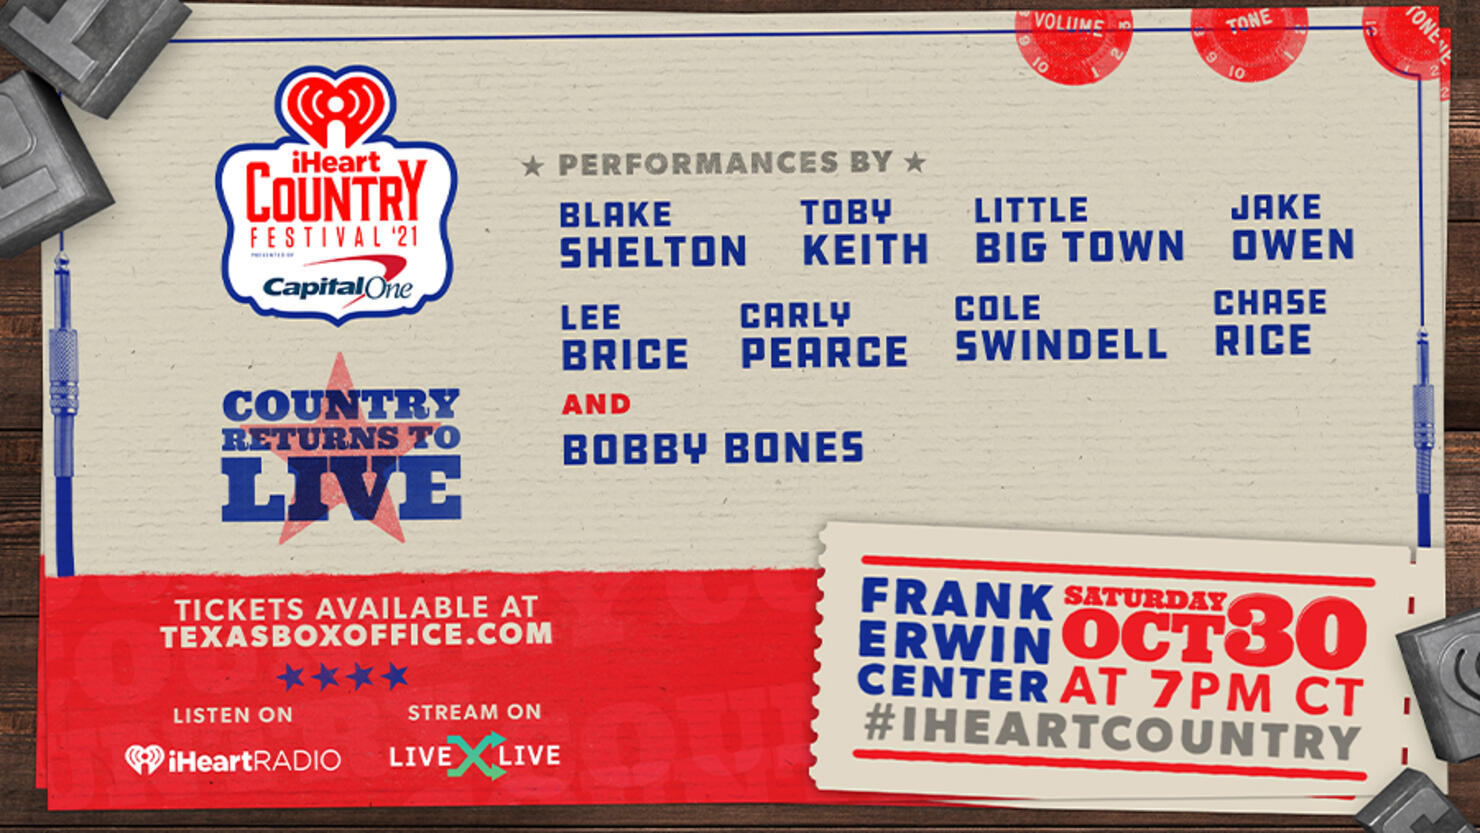 2021 iHeartCountry Festival Lineup: Blake Shelton, Toby Keith & More |  iHeart